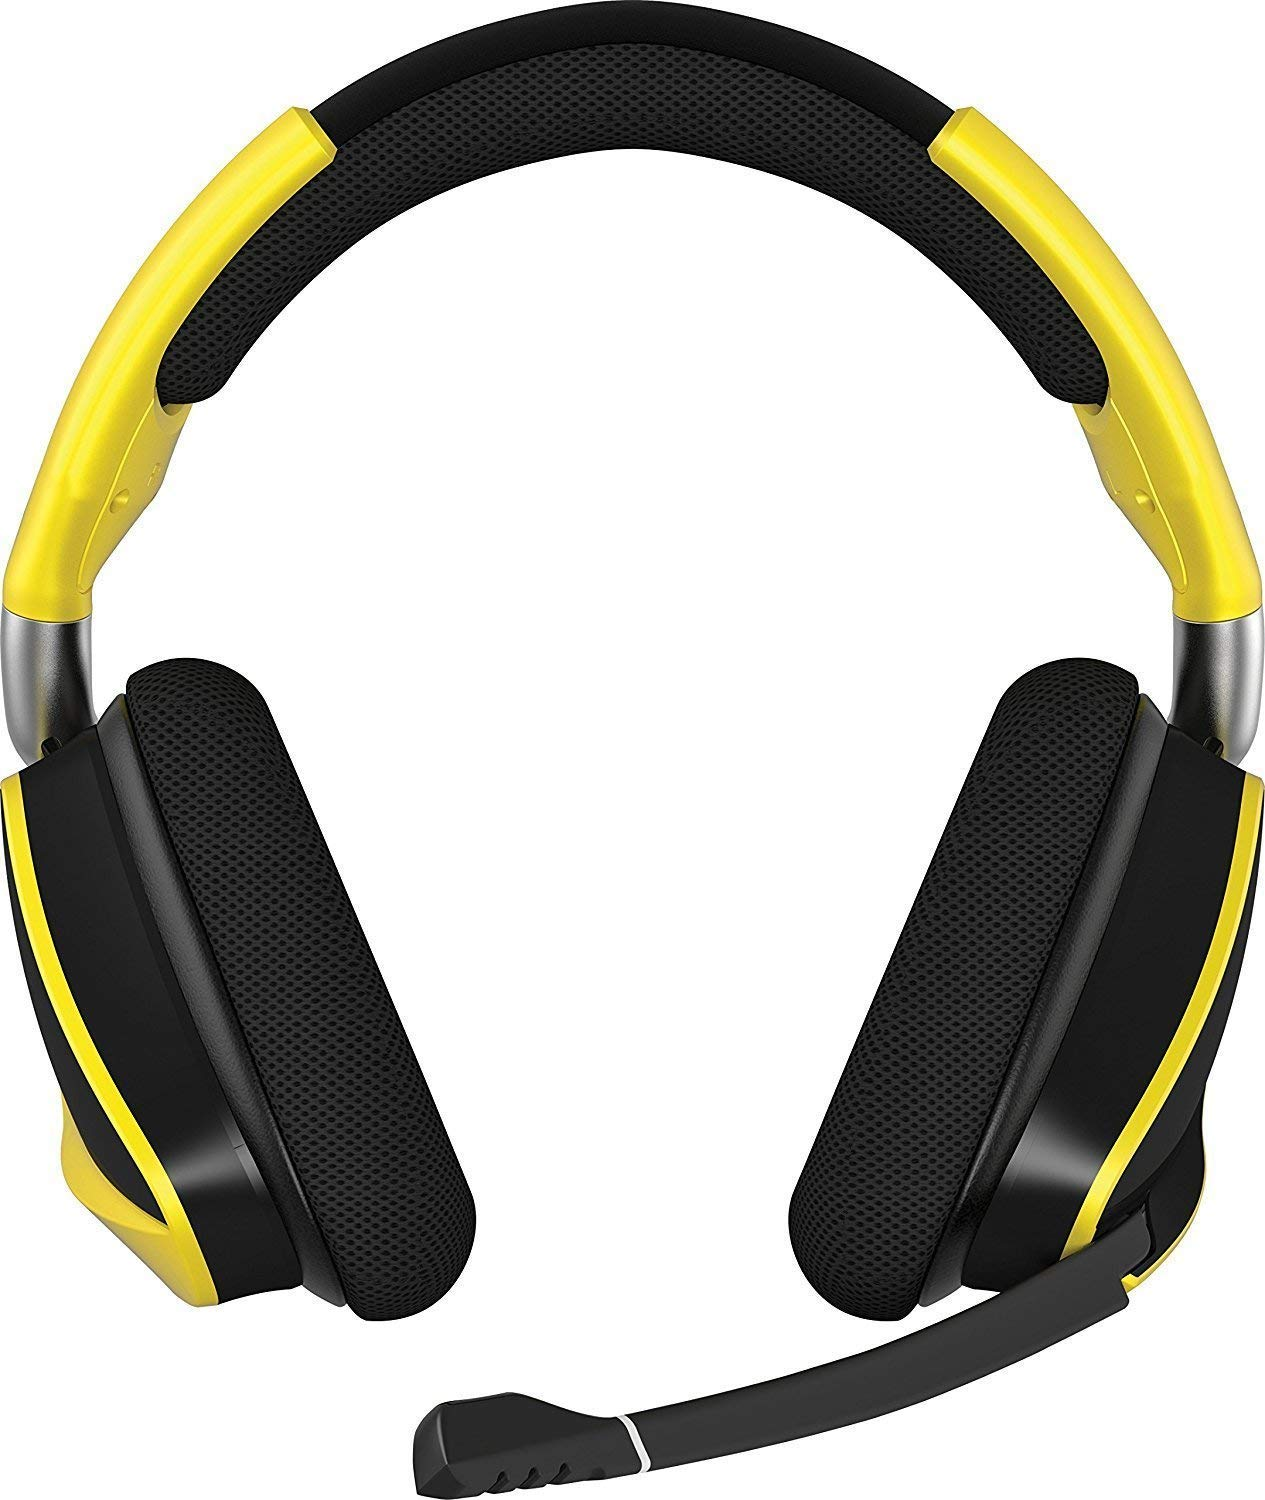 (refurb) CORSAIR Void PRO RGB Wireless Gaming Headset - Dolby 7.1 Surround Sound Headphones for PC - Discord - 50mm Drivers - Yellow (Renewed) $50